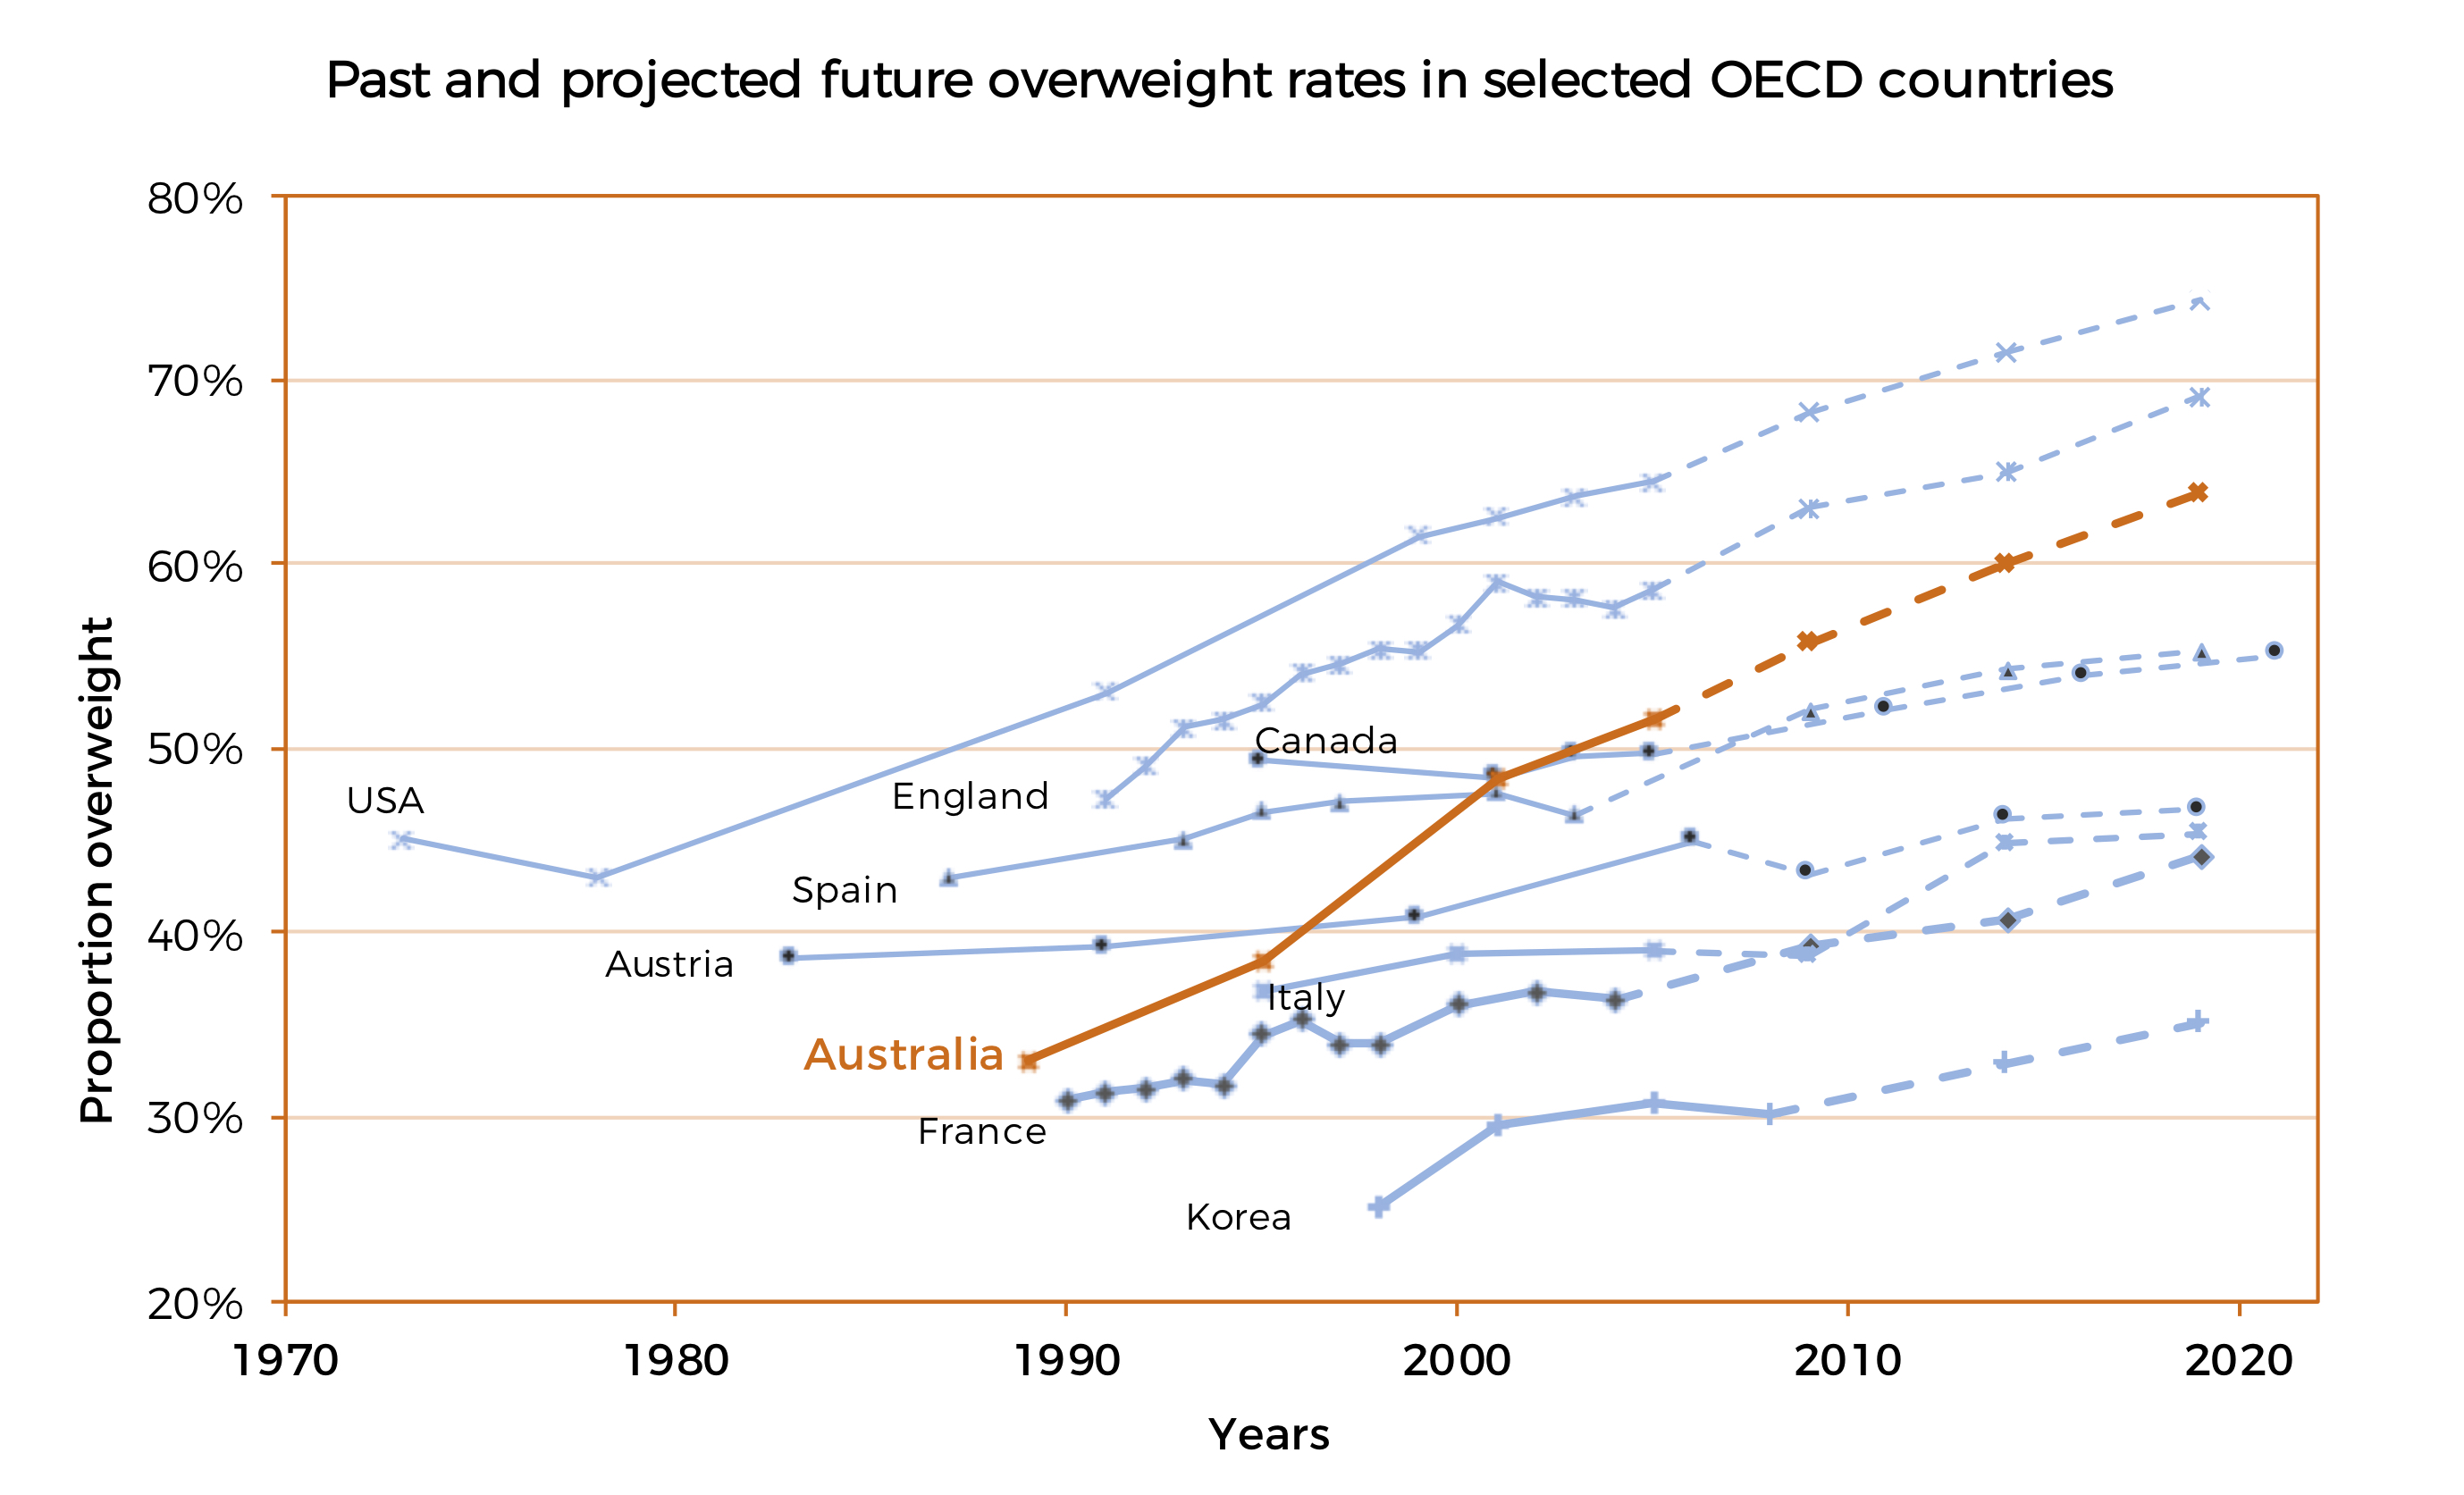 past and projected future overweight rates